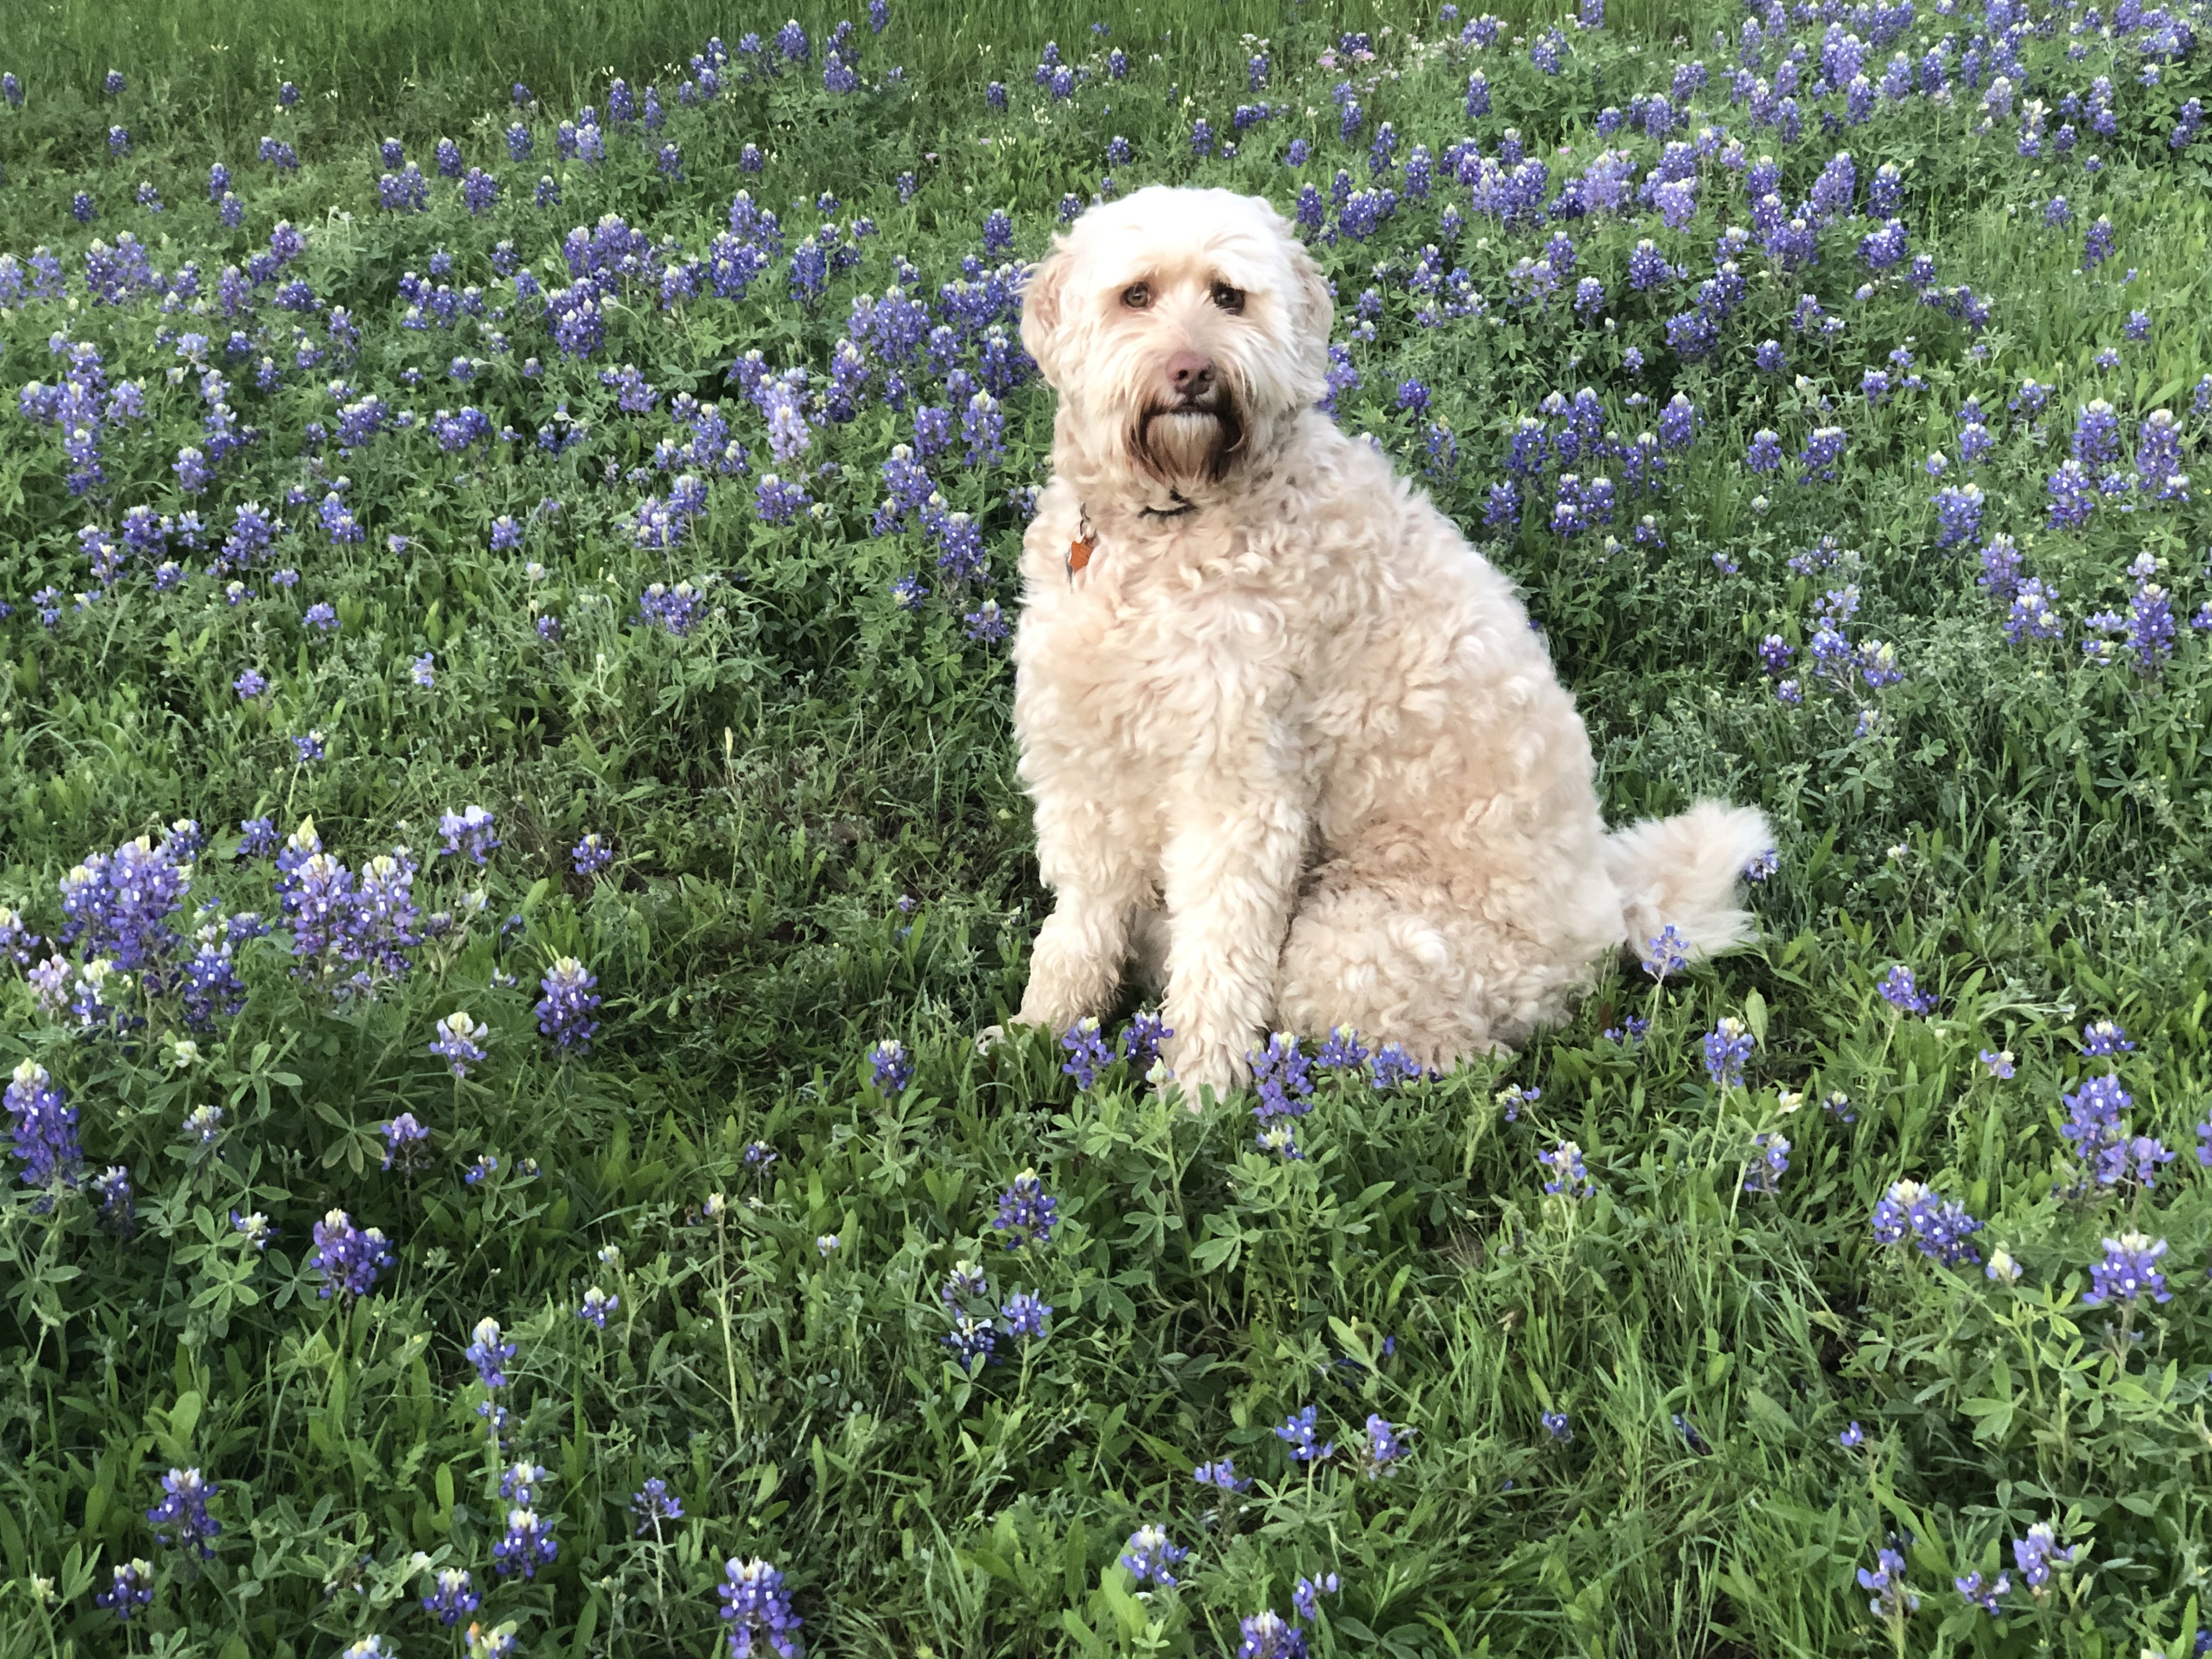 Brandy, the labradoodle, during an early morning walk at Circle C park March 25, 2020 (Courtesy Keith Melrose)